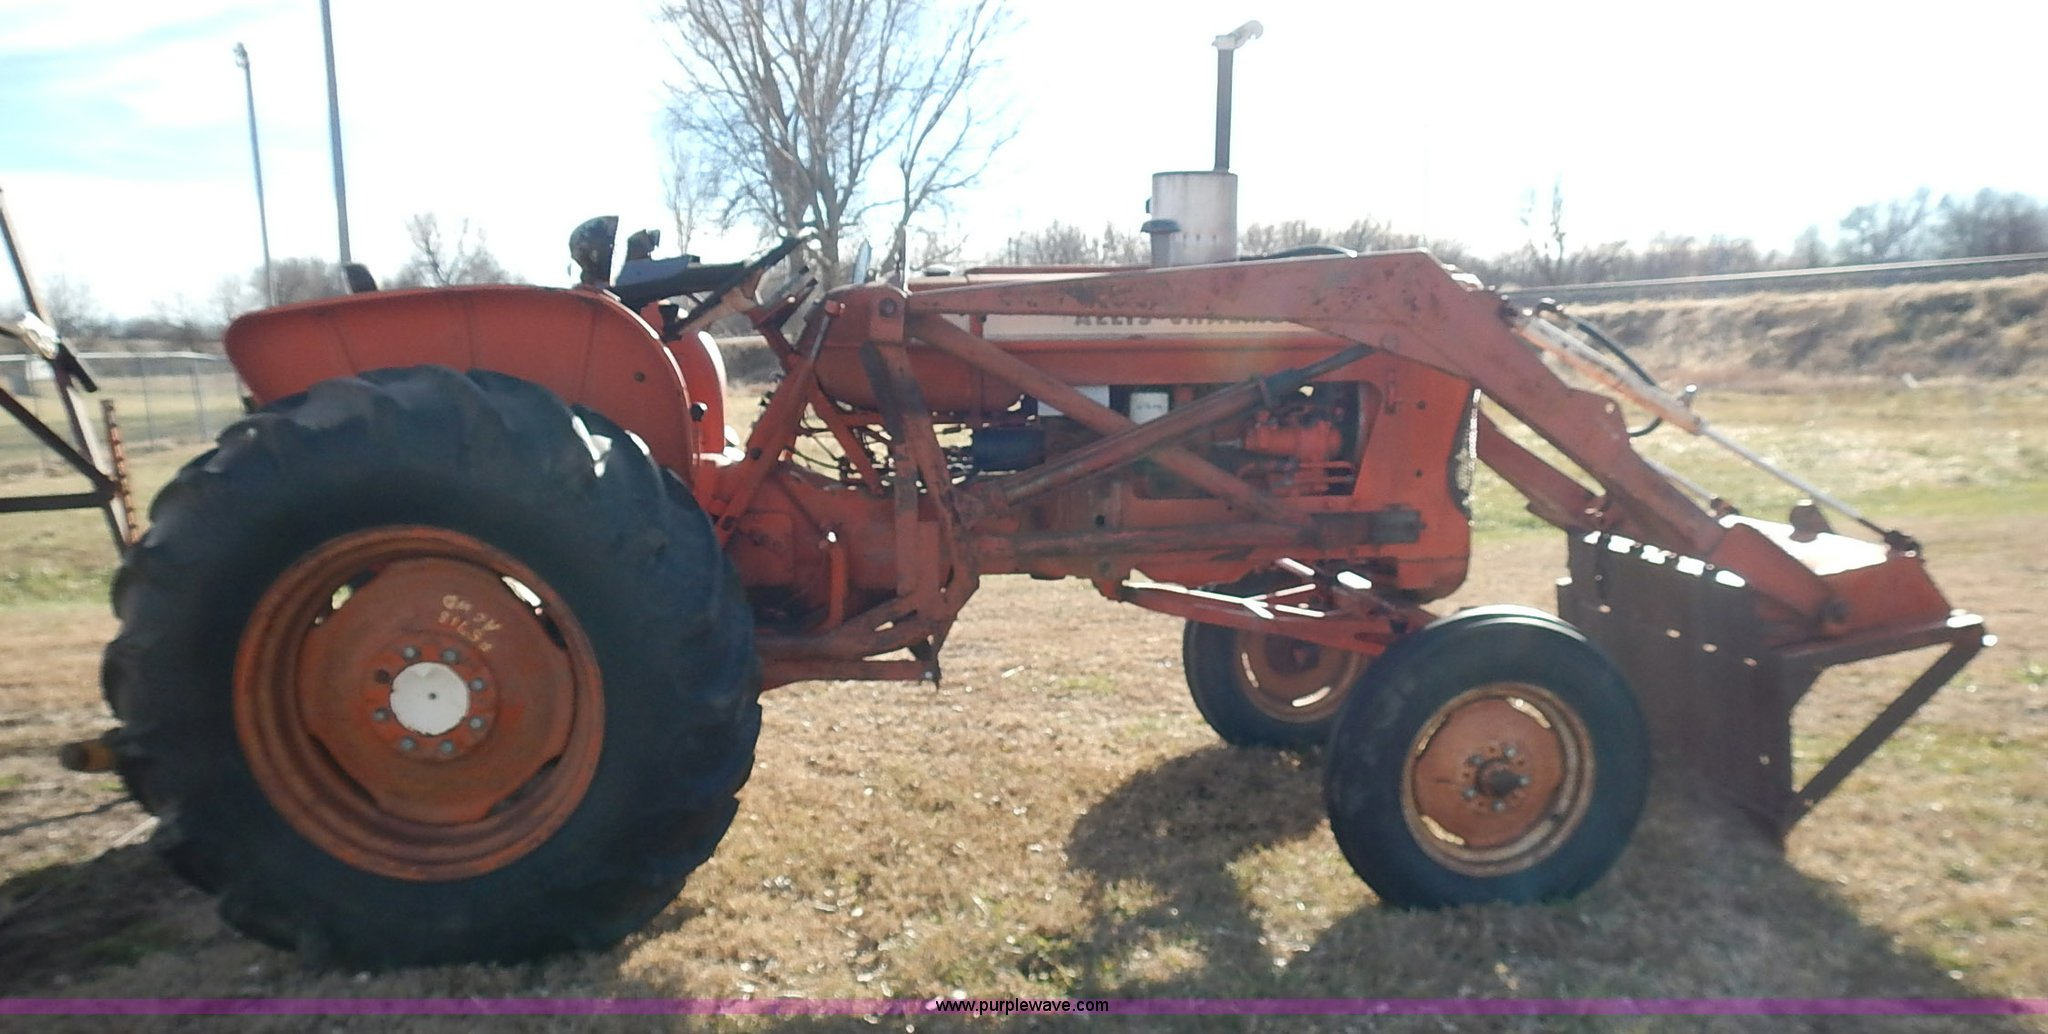 ... 1962 Allis Chalmers D15 Series 2 tractor Full size in new window ...